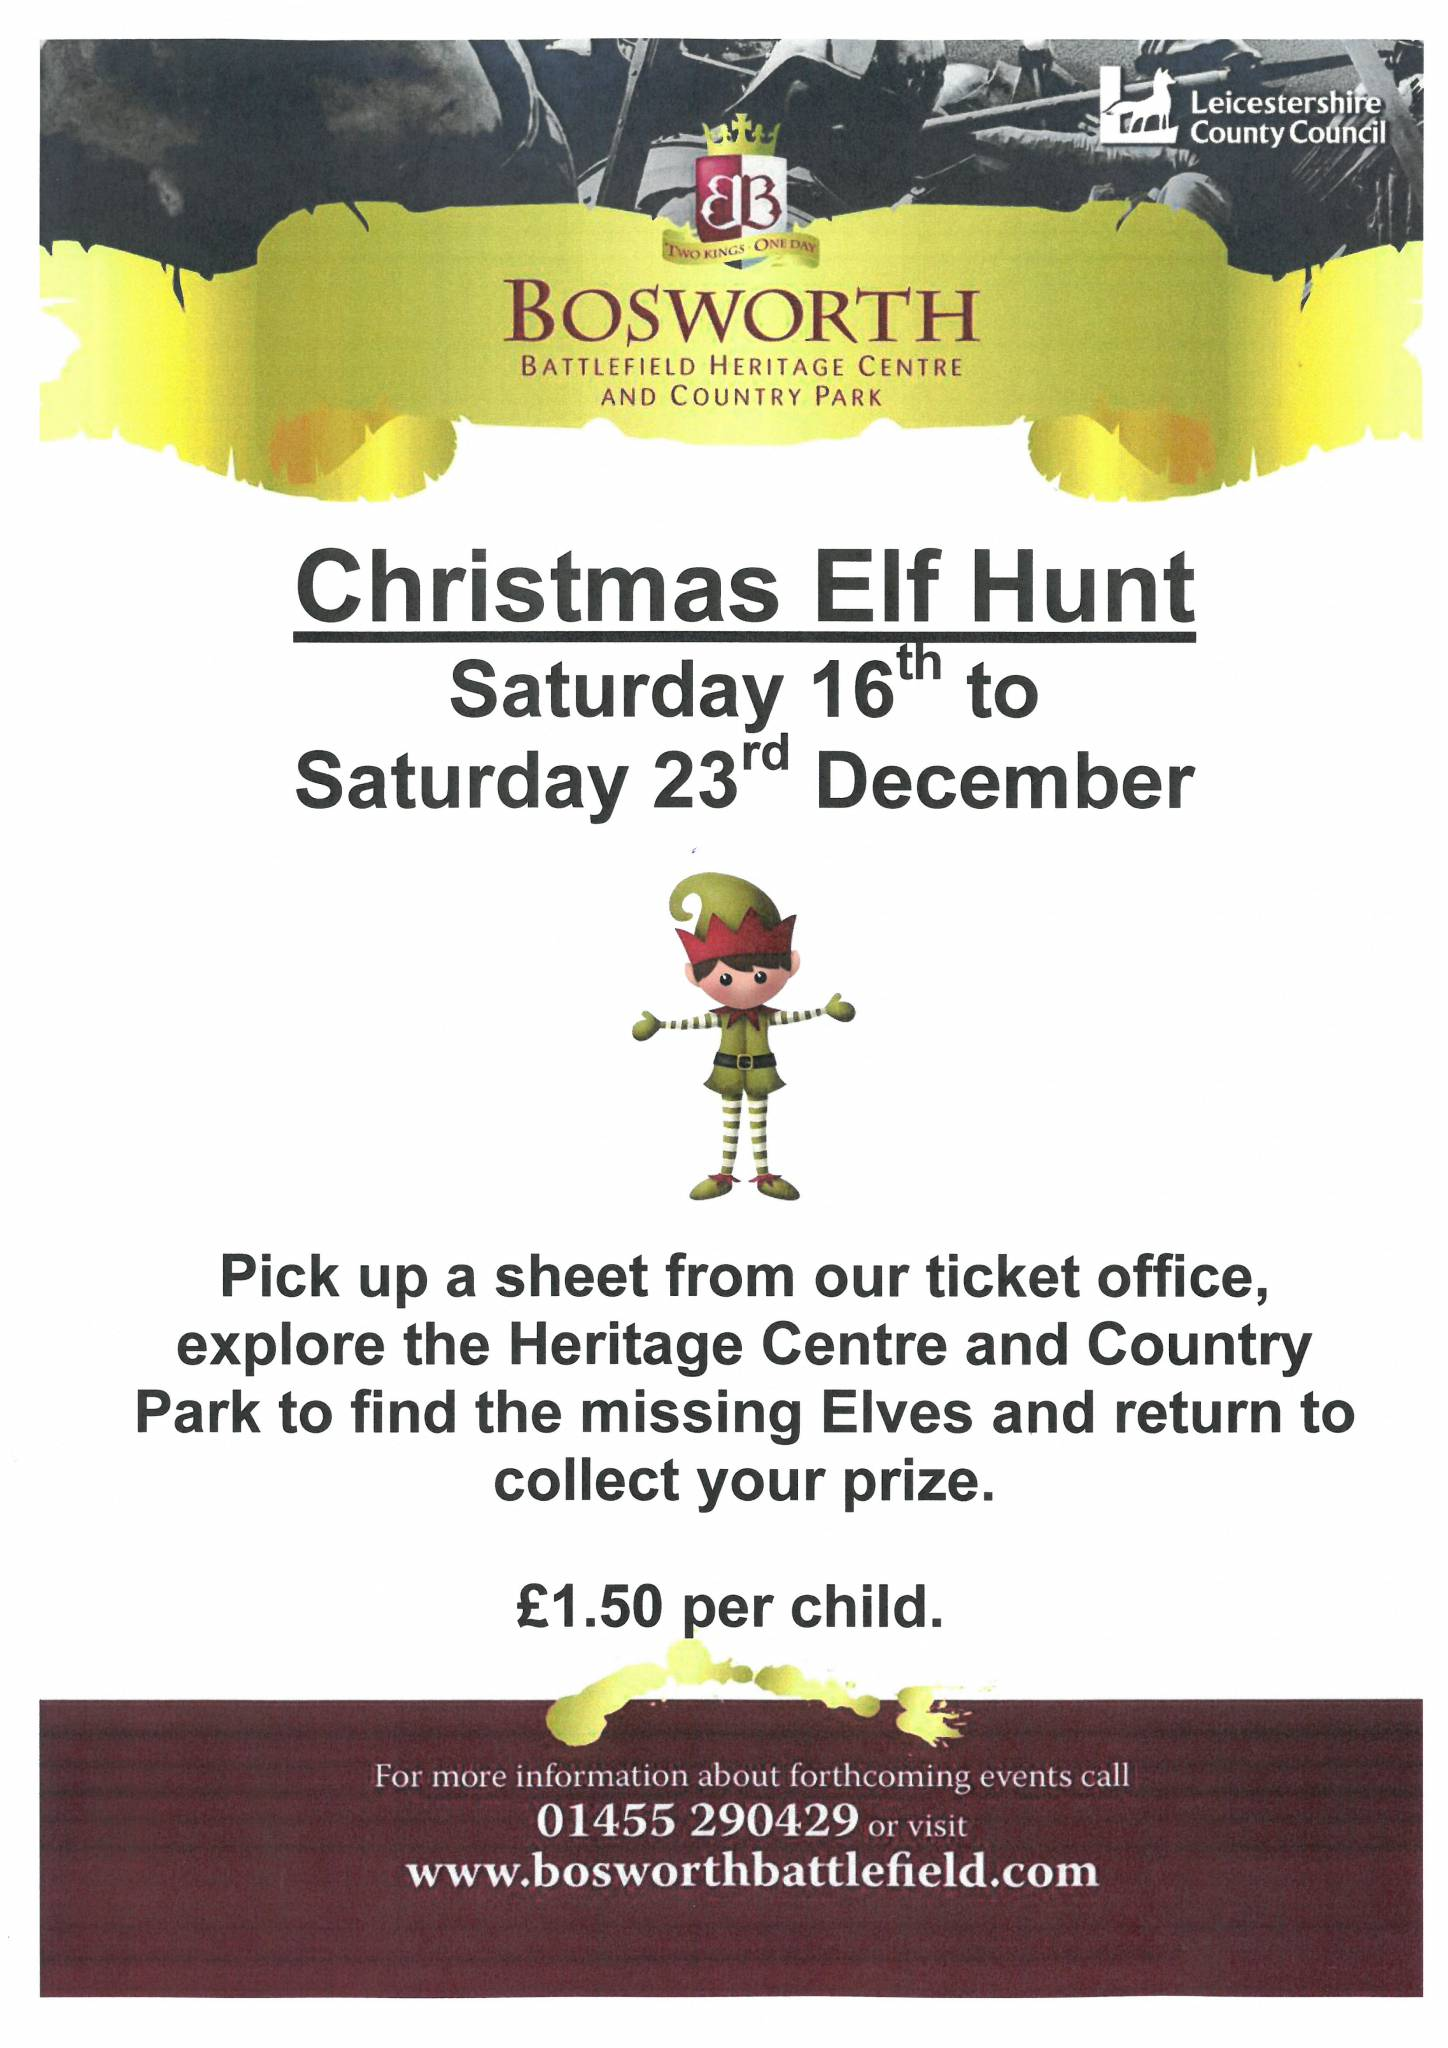 Christmas Elf Hunt